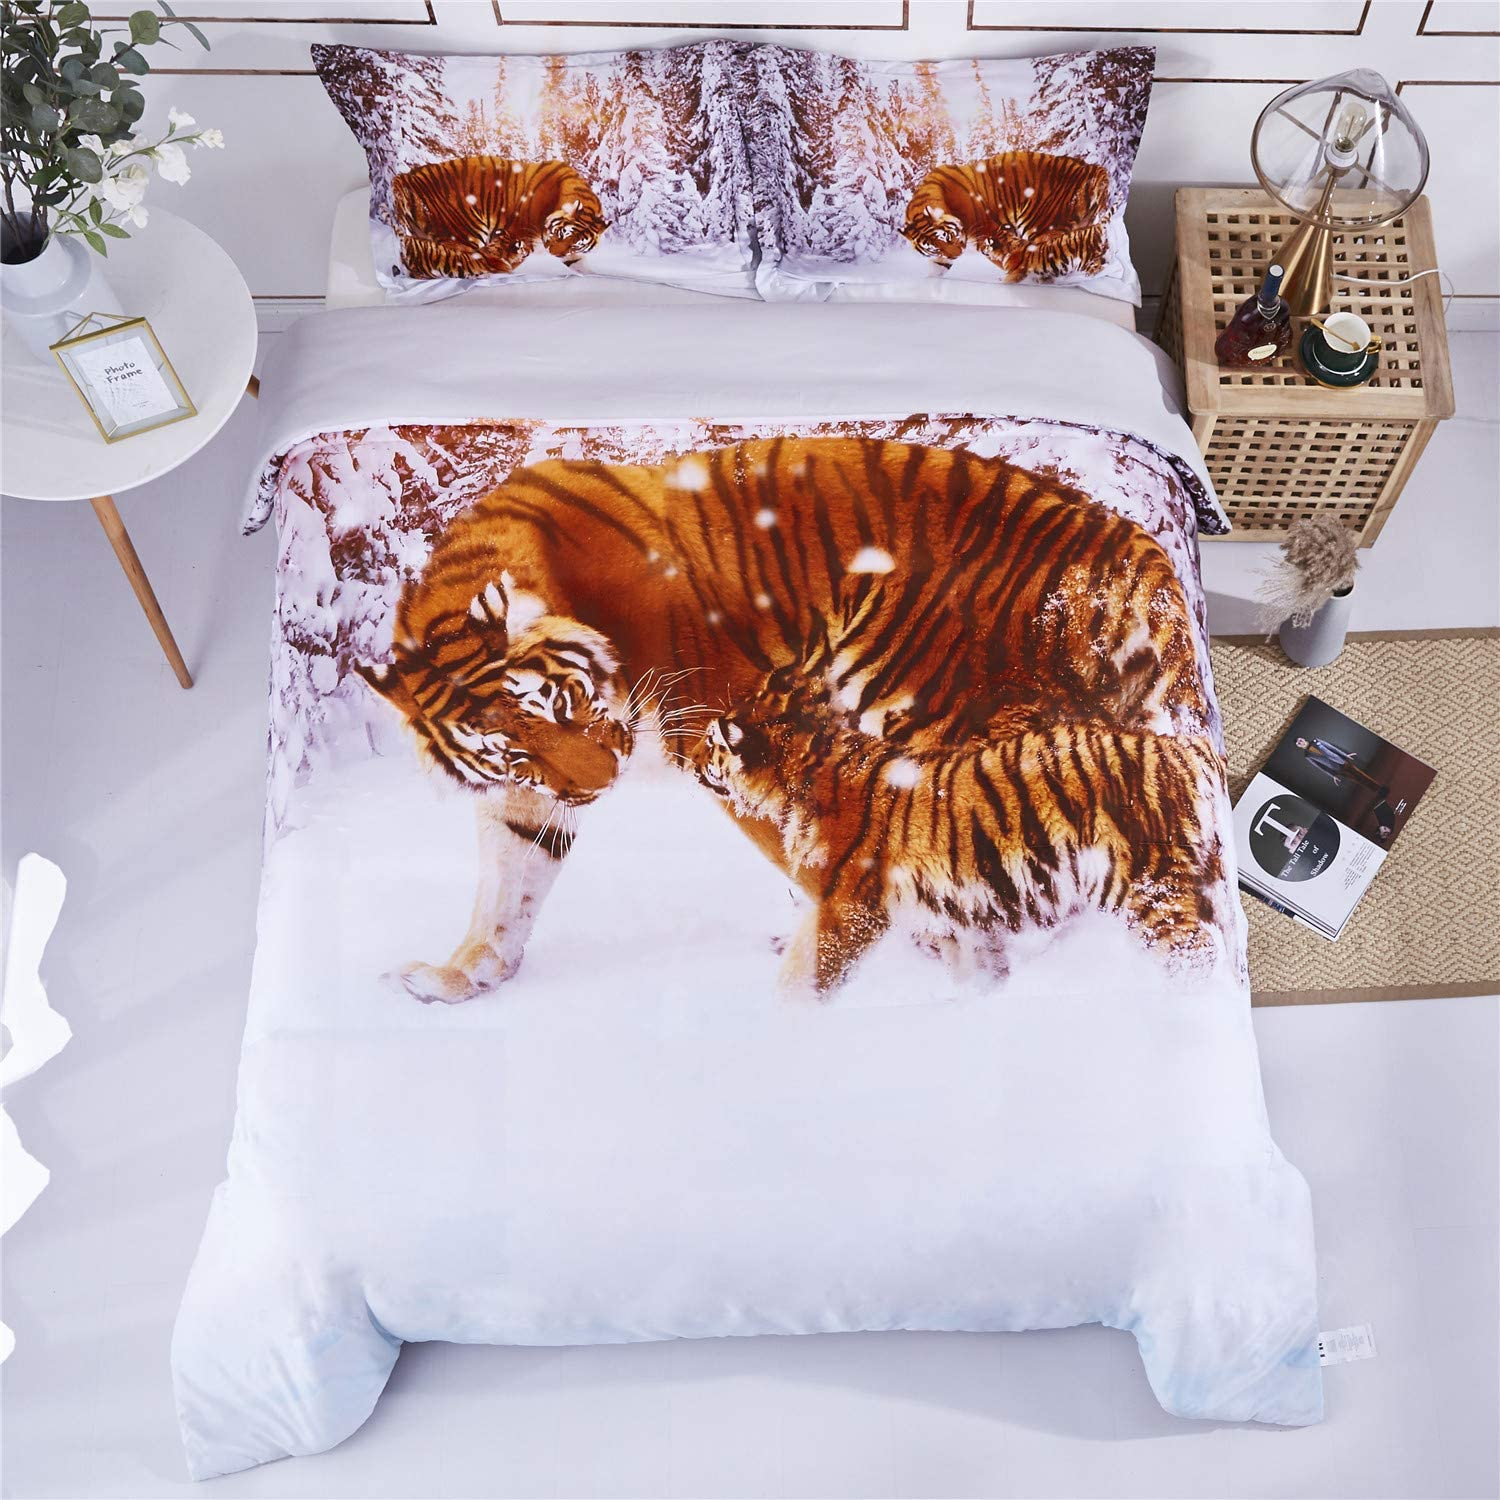 HIG 3D Bedding Set 3 Piece Queen Size Winter Tiger Animal Print Duvet Cover with Two Matching Pillow Covers -Super Soft Duvet Cover -General for Men and Women Especially for Children (P28,Queen)